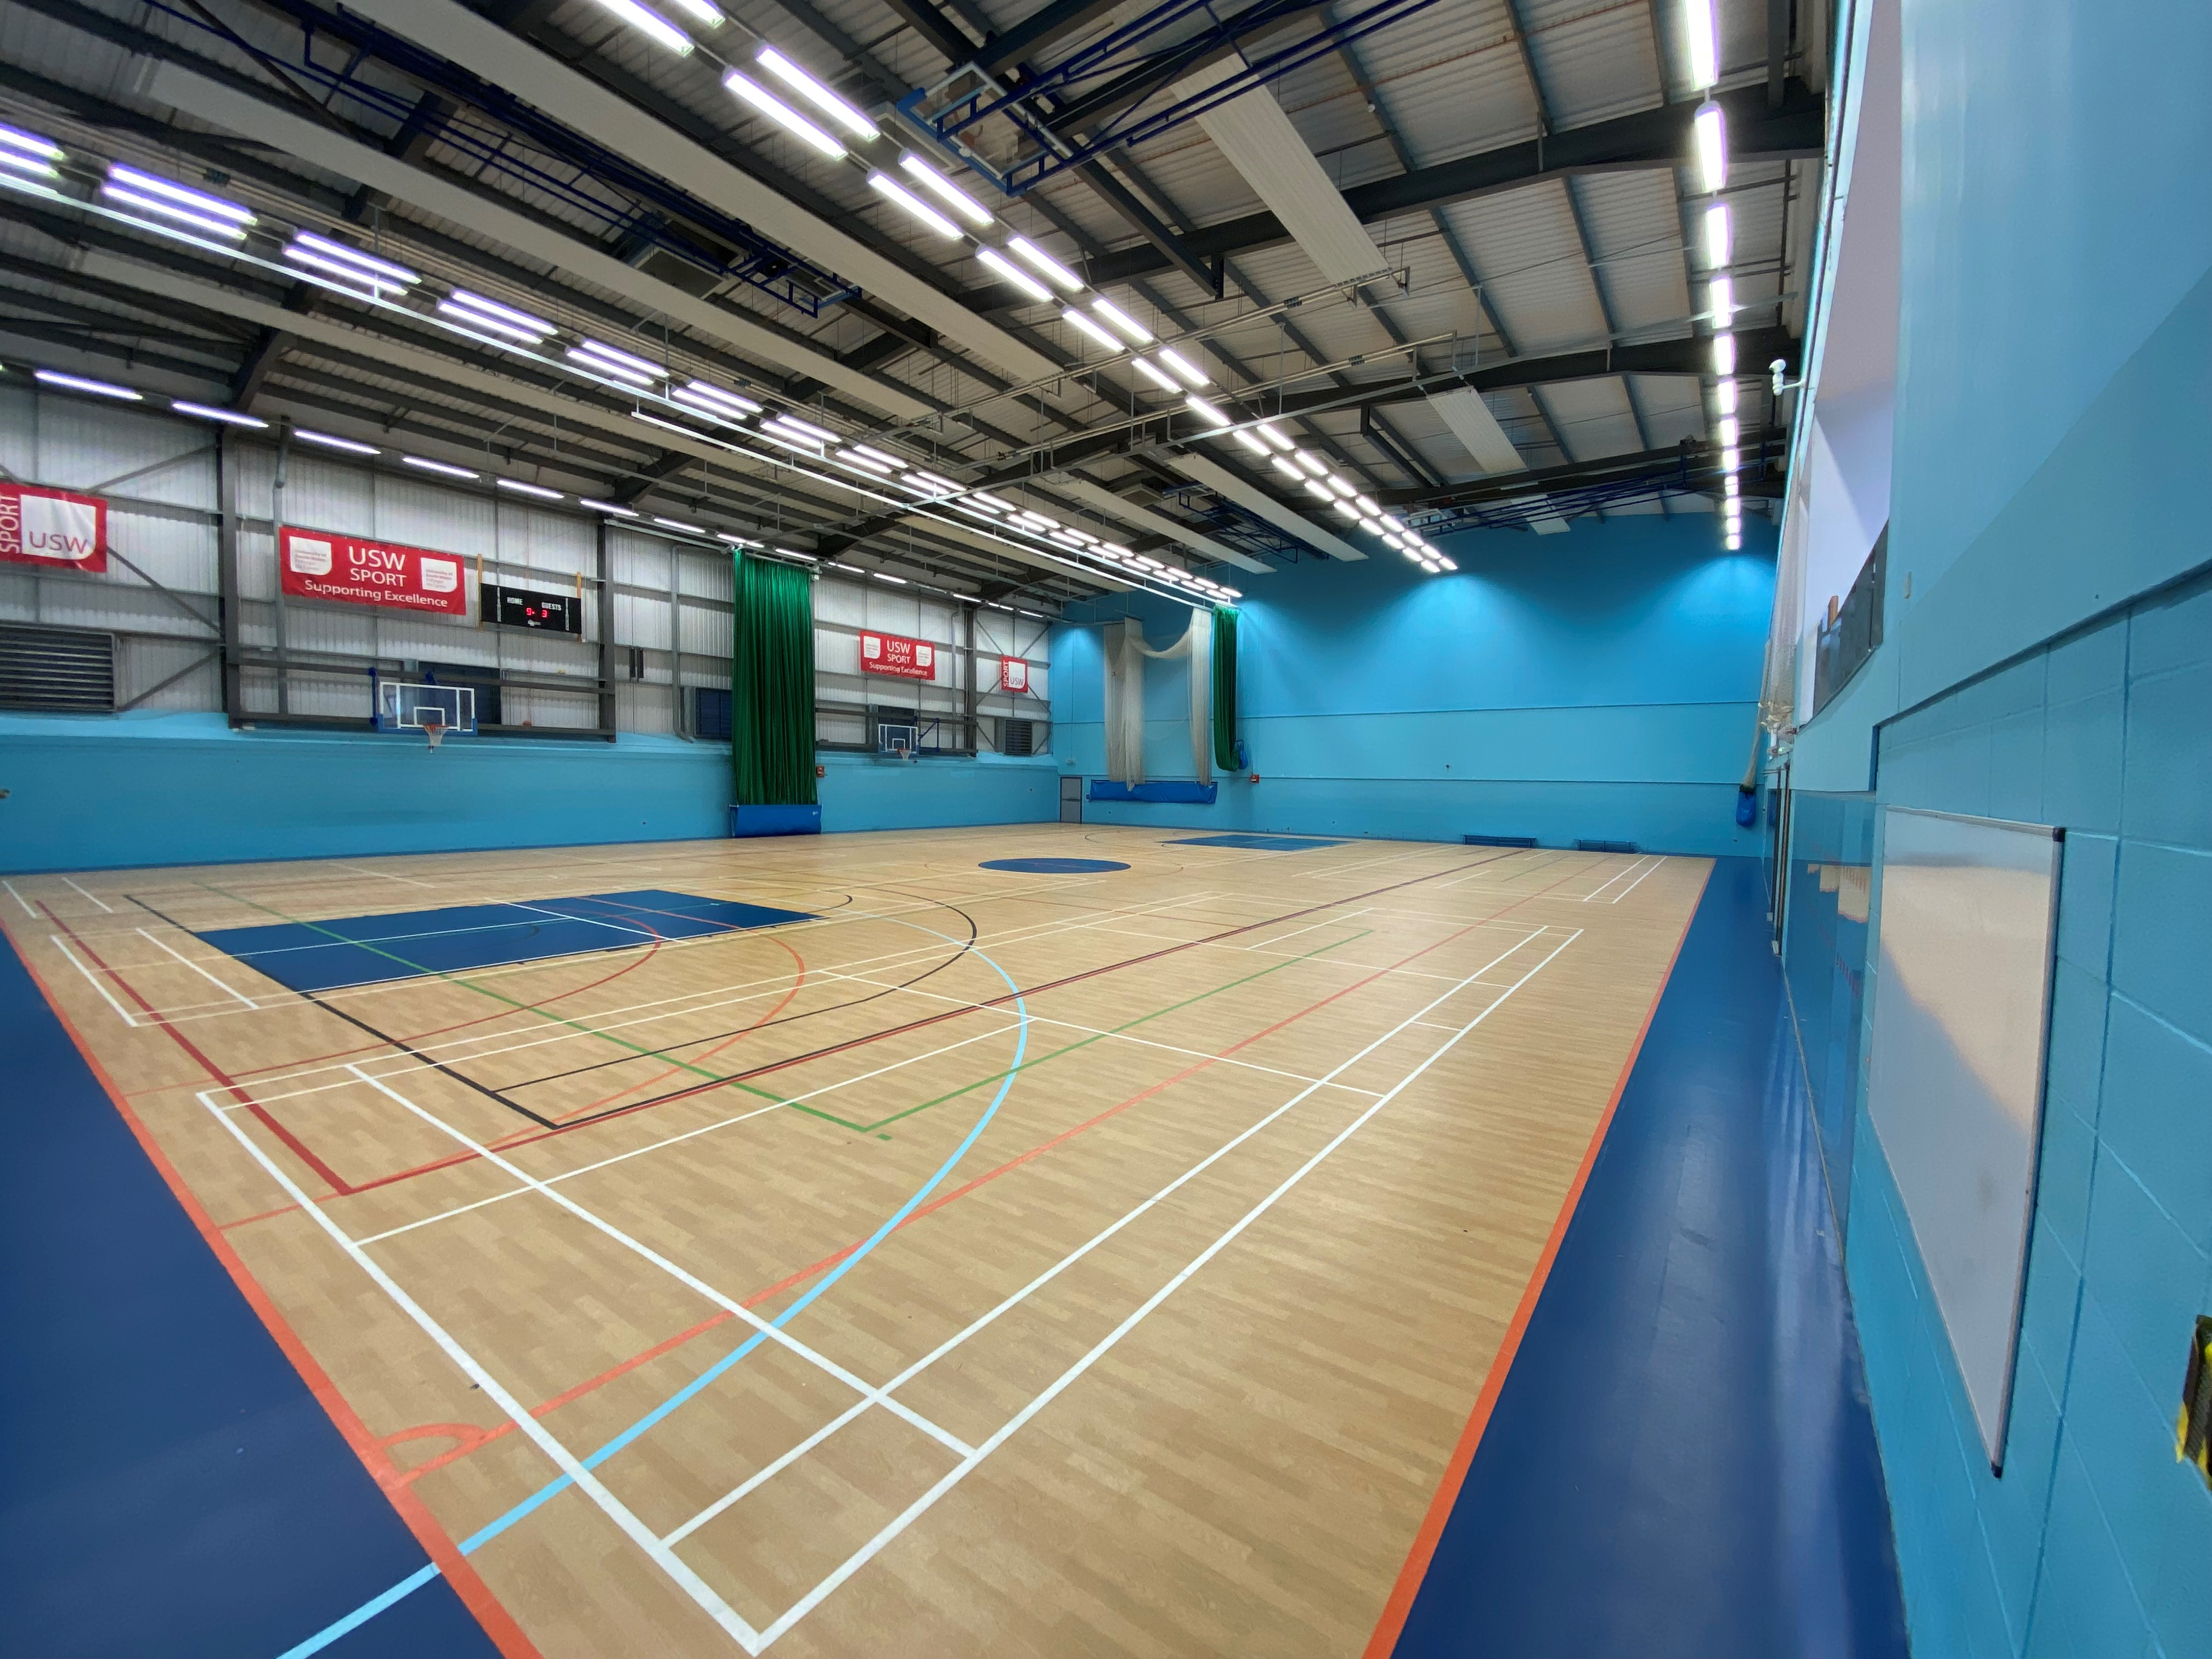 University of South Wales sports flooring